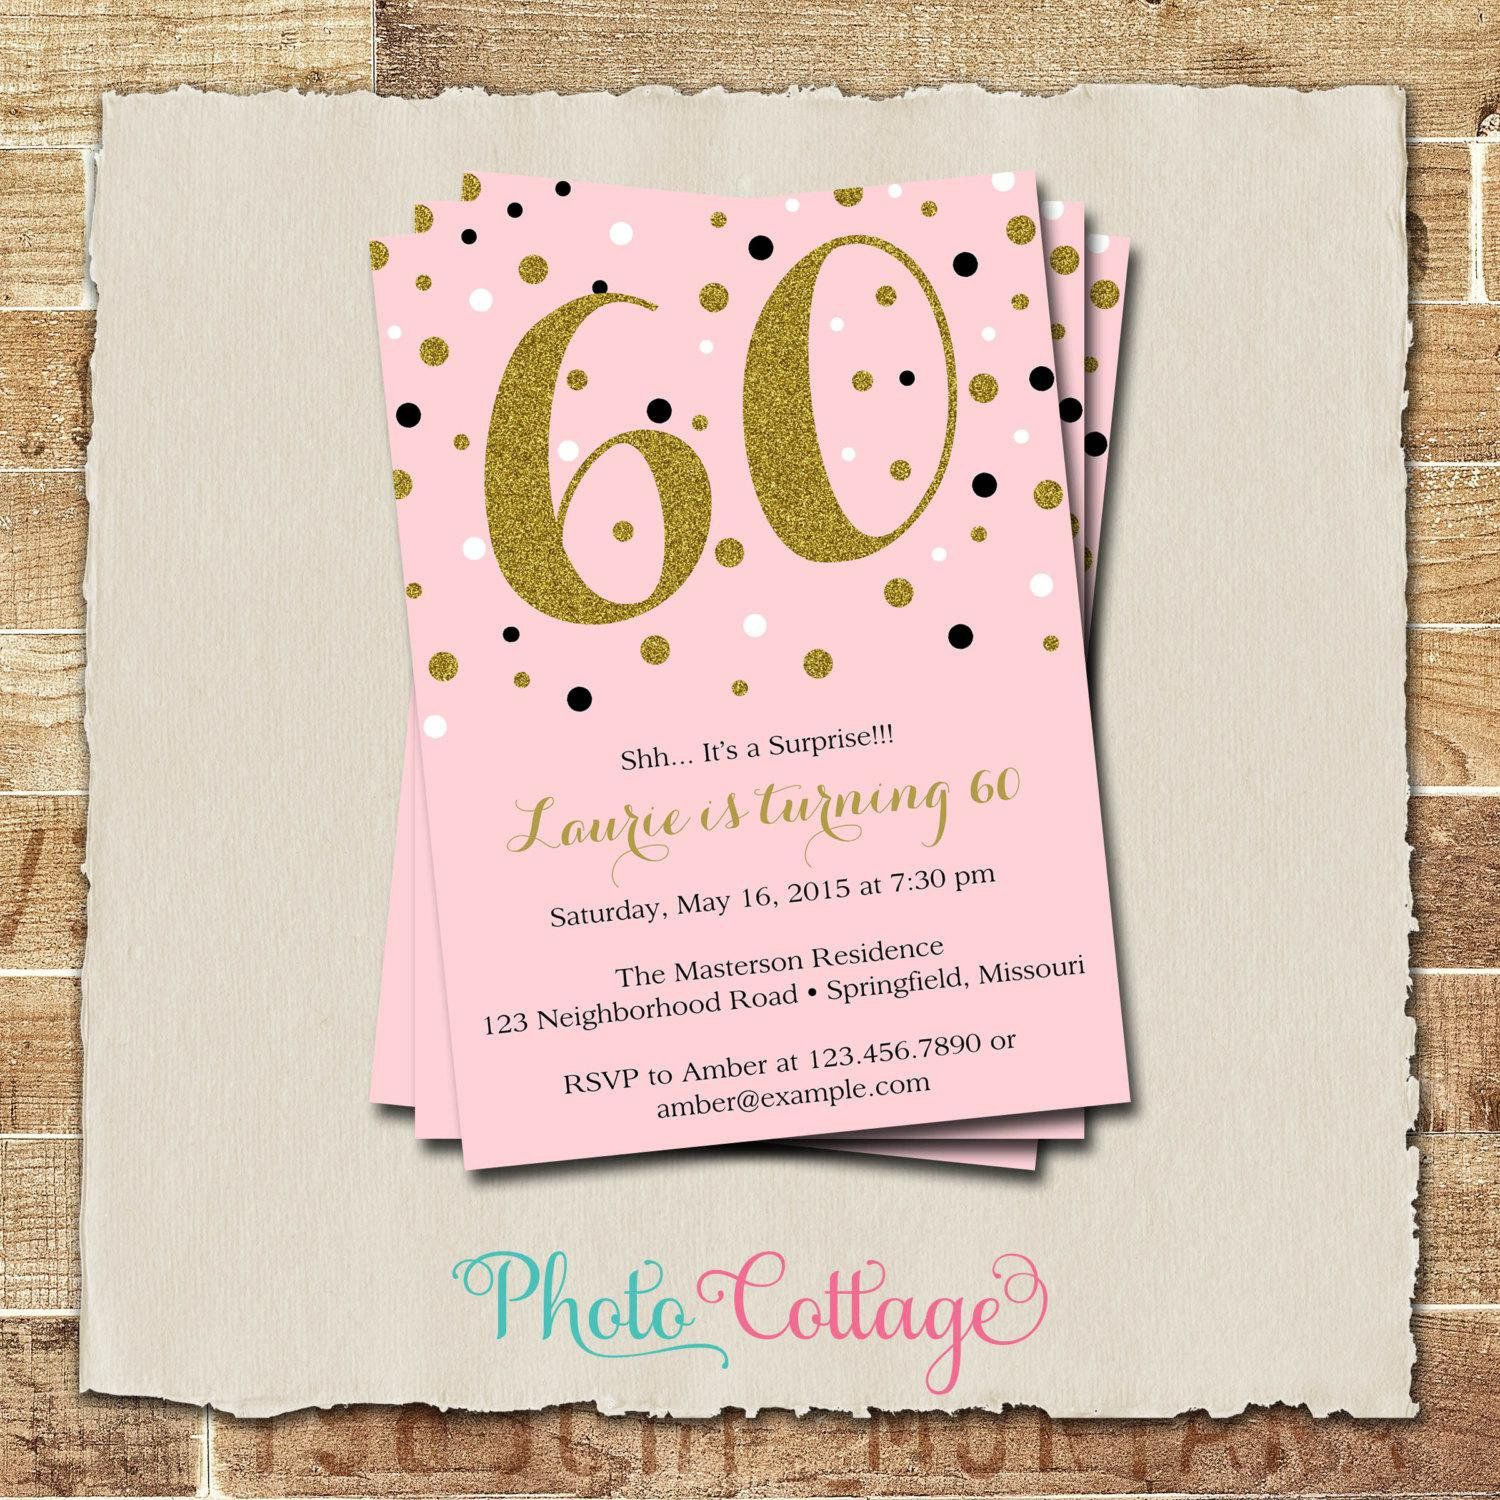 60th Birthday Invitations For Dad Birthday Invitation Card Template 60th Birthday Party Invitations Birthday Party Invitation Wording